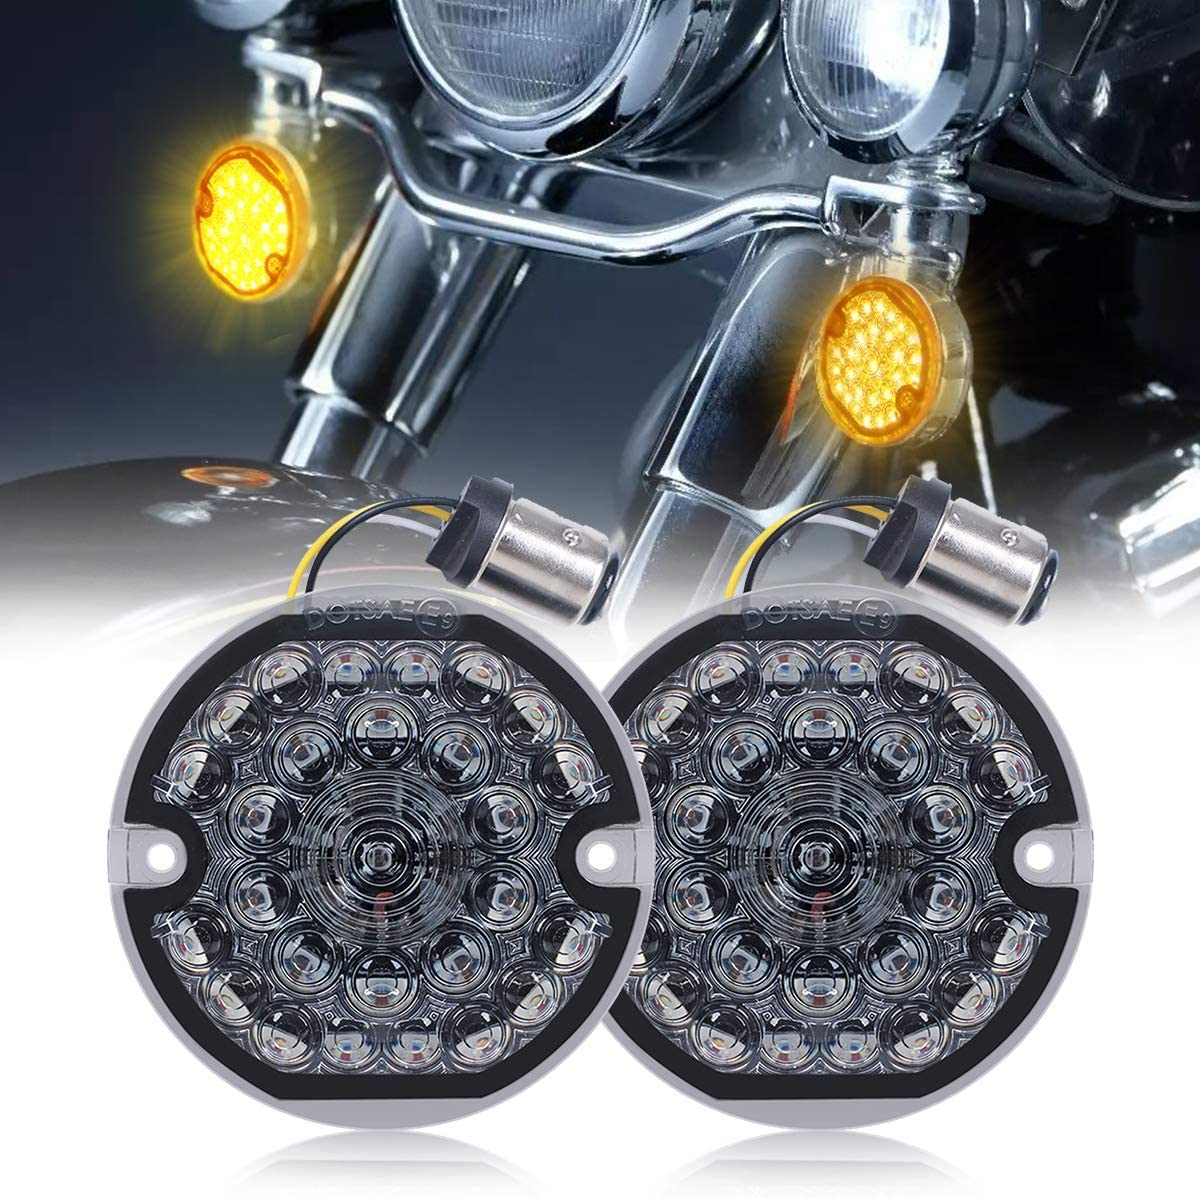 2 PCS Smoke Turn Signal Light Lens Cover 3 1//4 Touring OEM Flat Smoked Front Rear Lense Kit for Harley Touring Models